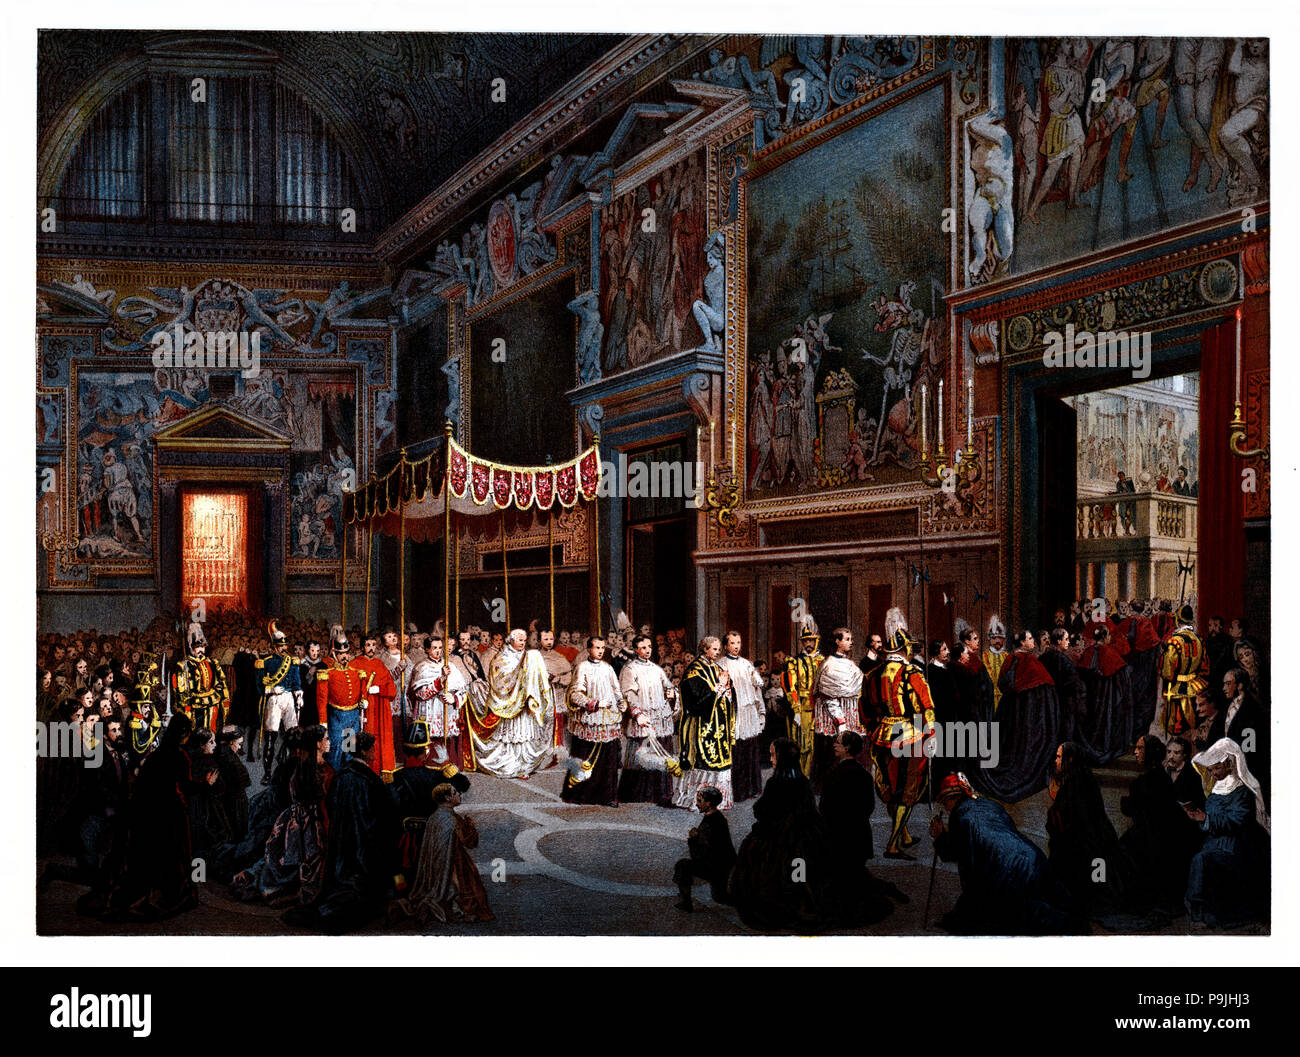 Pontifical ceremonies. Procession of the Blessed Sacrament to the Sistine Chapel. Color engraving from 1871. - Stock Image